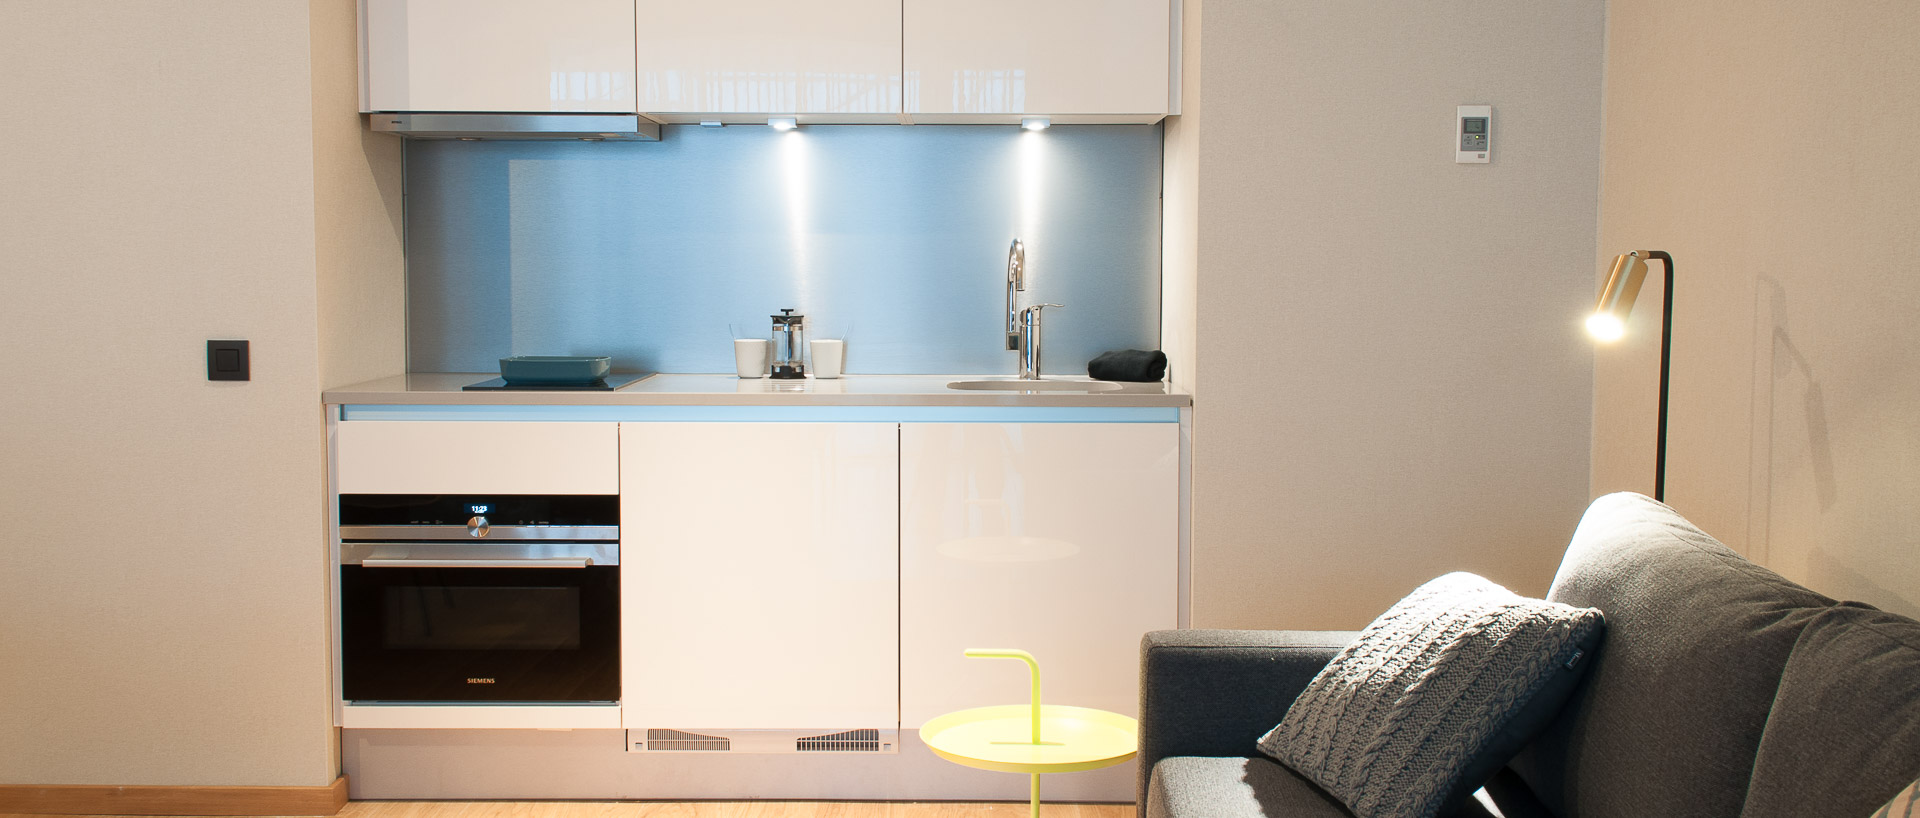 Kitchenette in PREMIER SUITES PLUS Antwerp